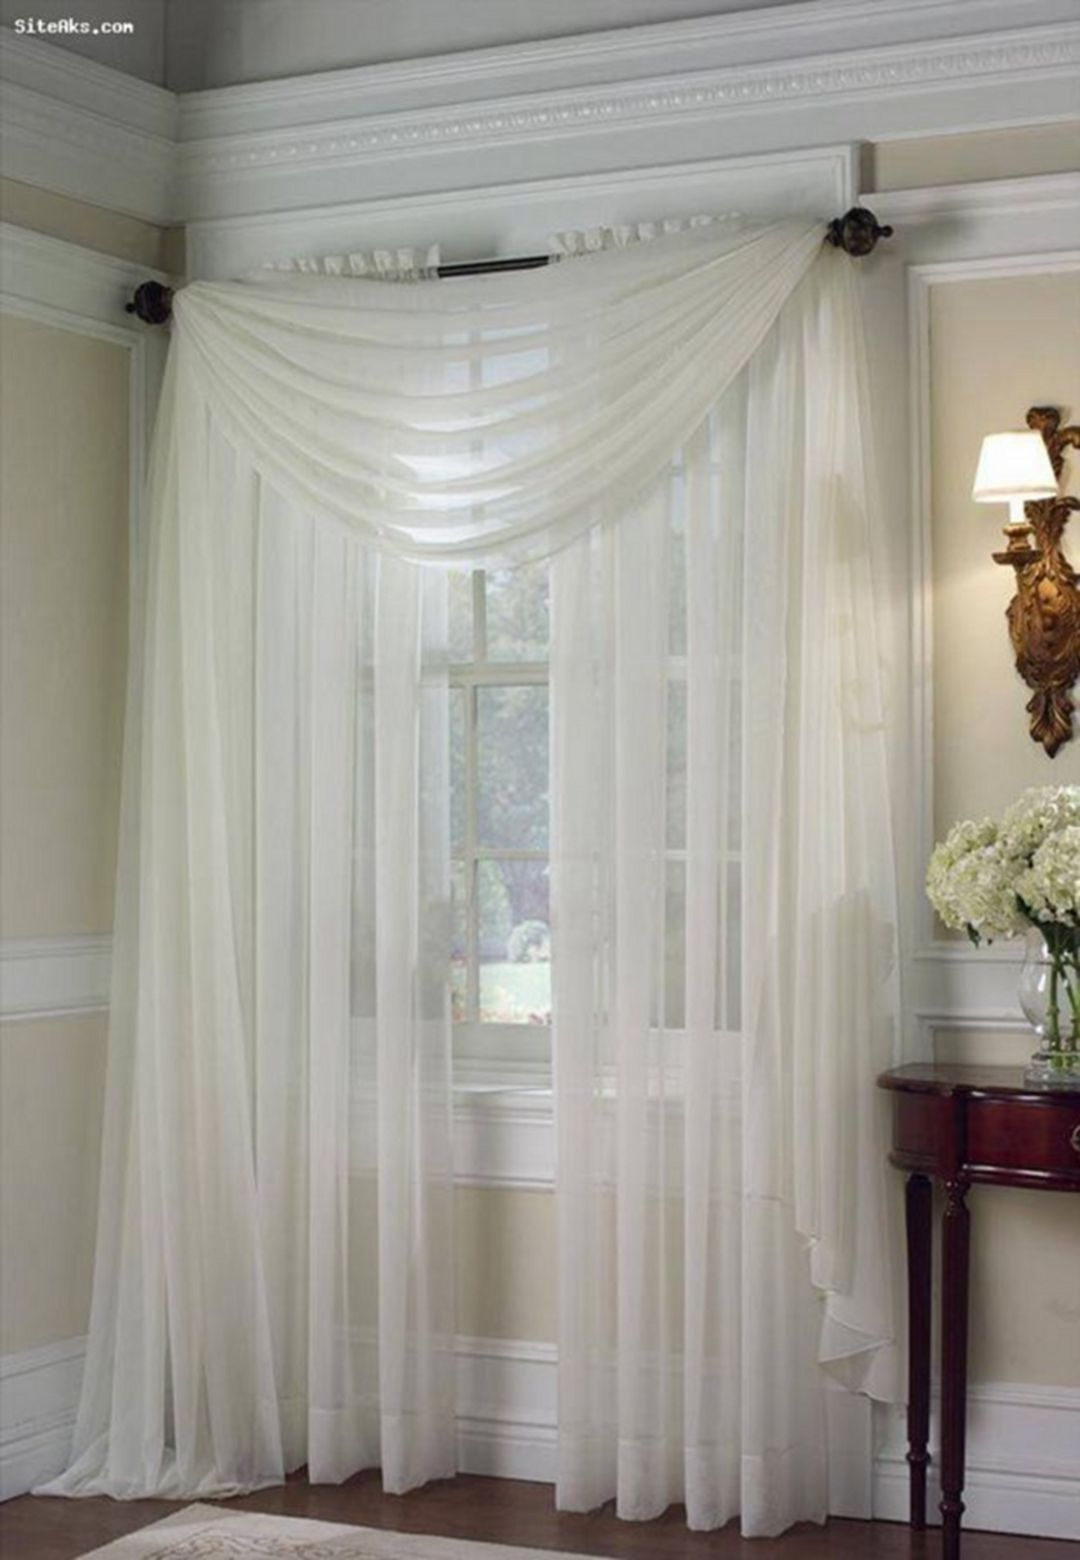 Beautiful Colorful Curtain Ideas To Make Amazing Scenery in Your